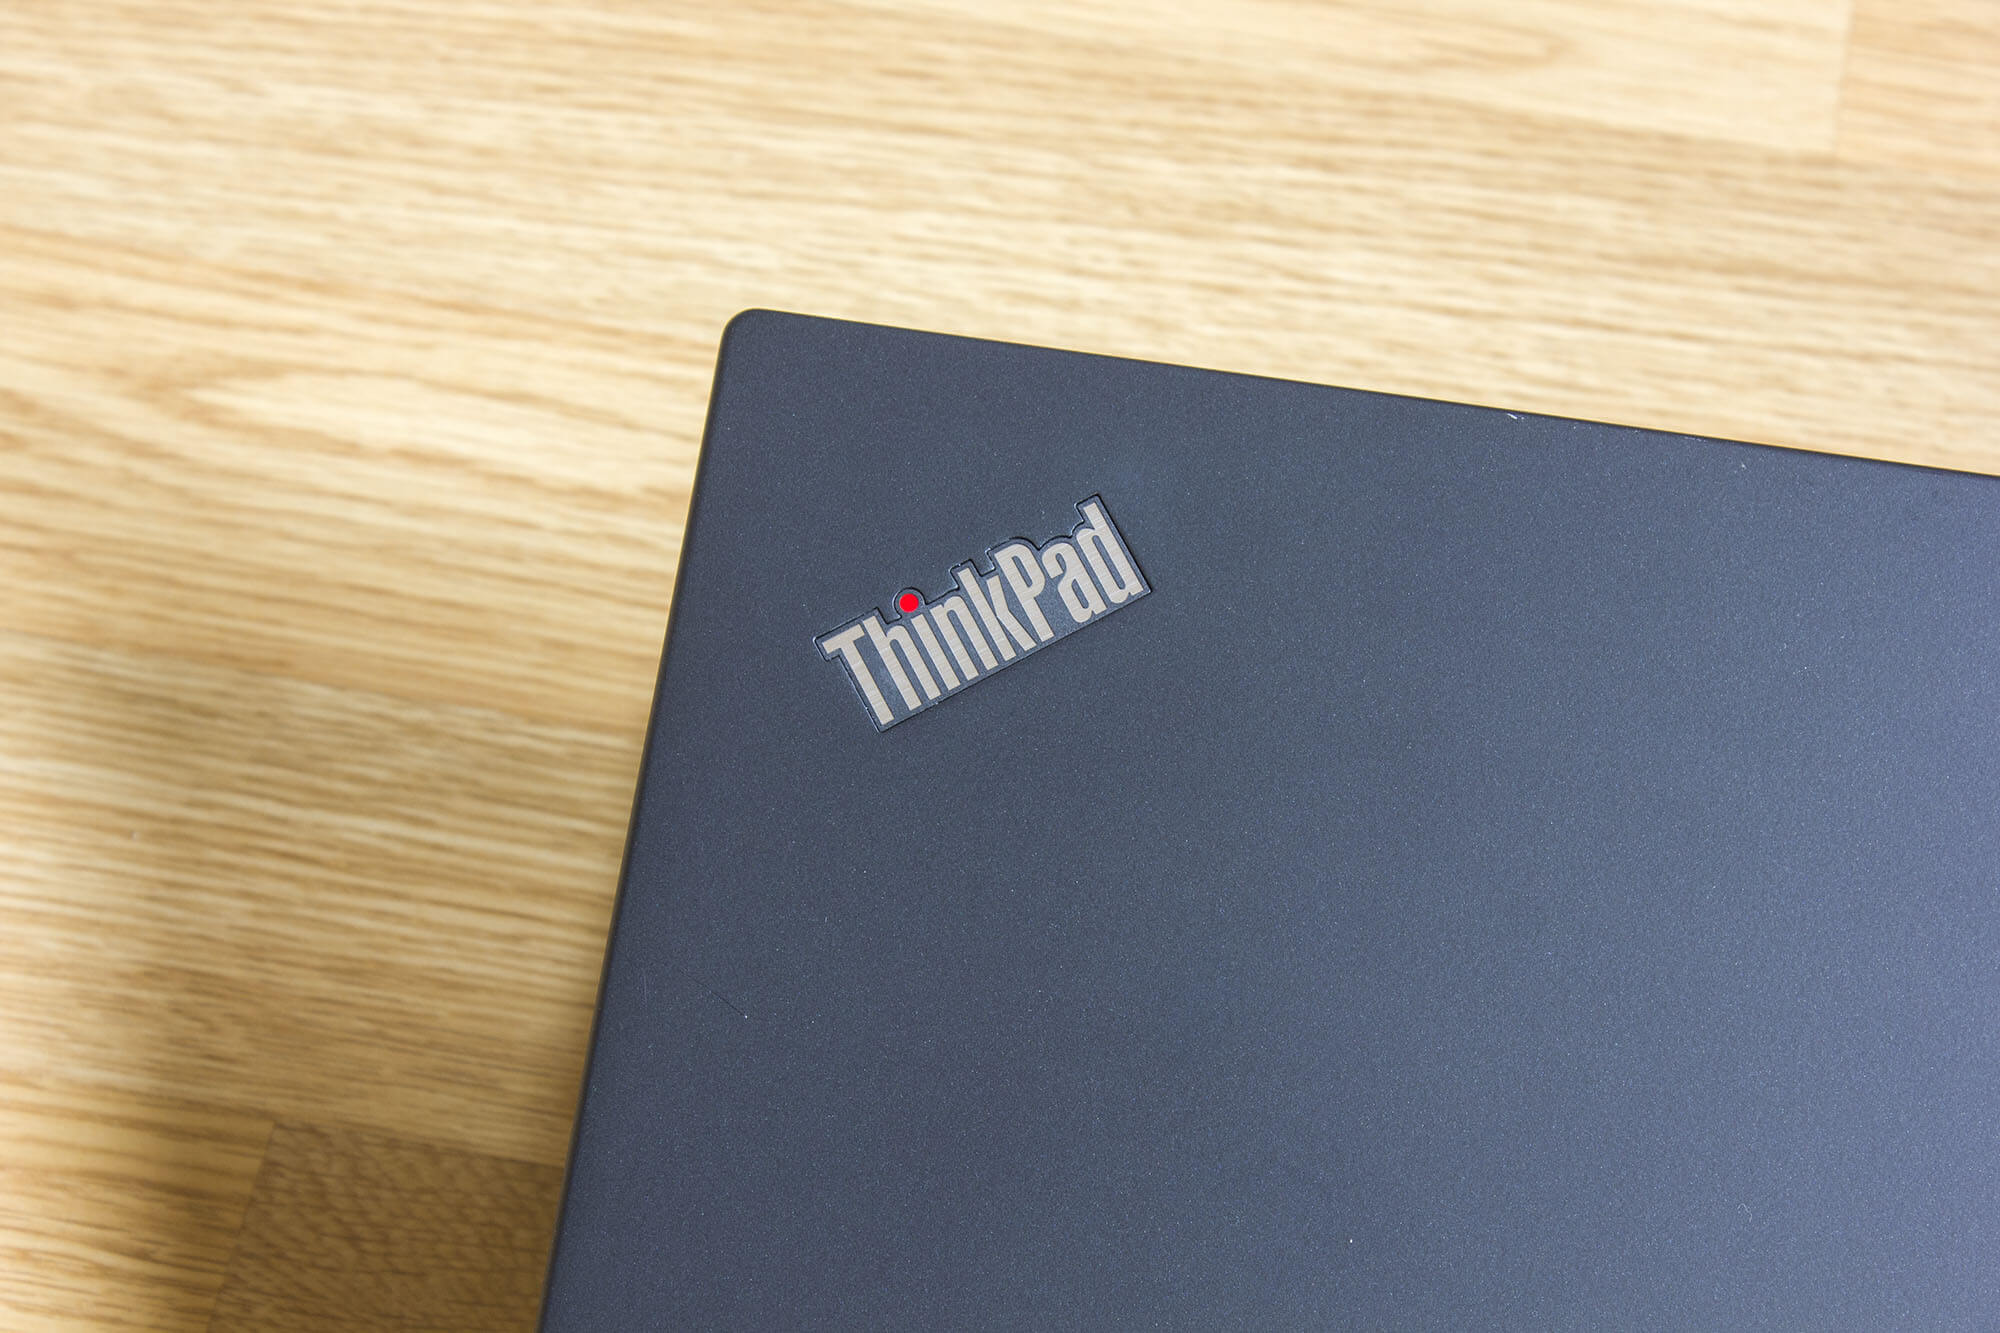 thinkpad_logo